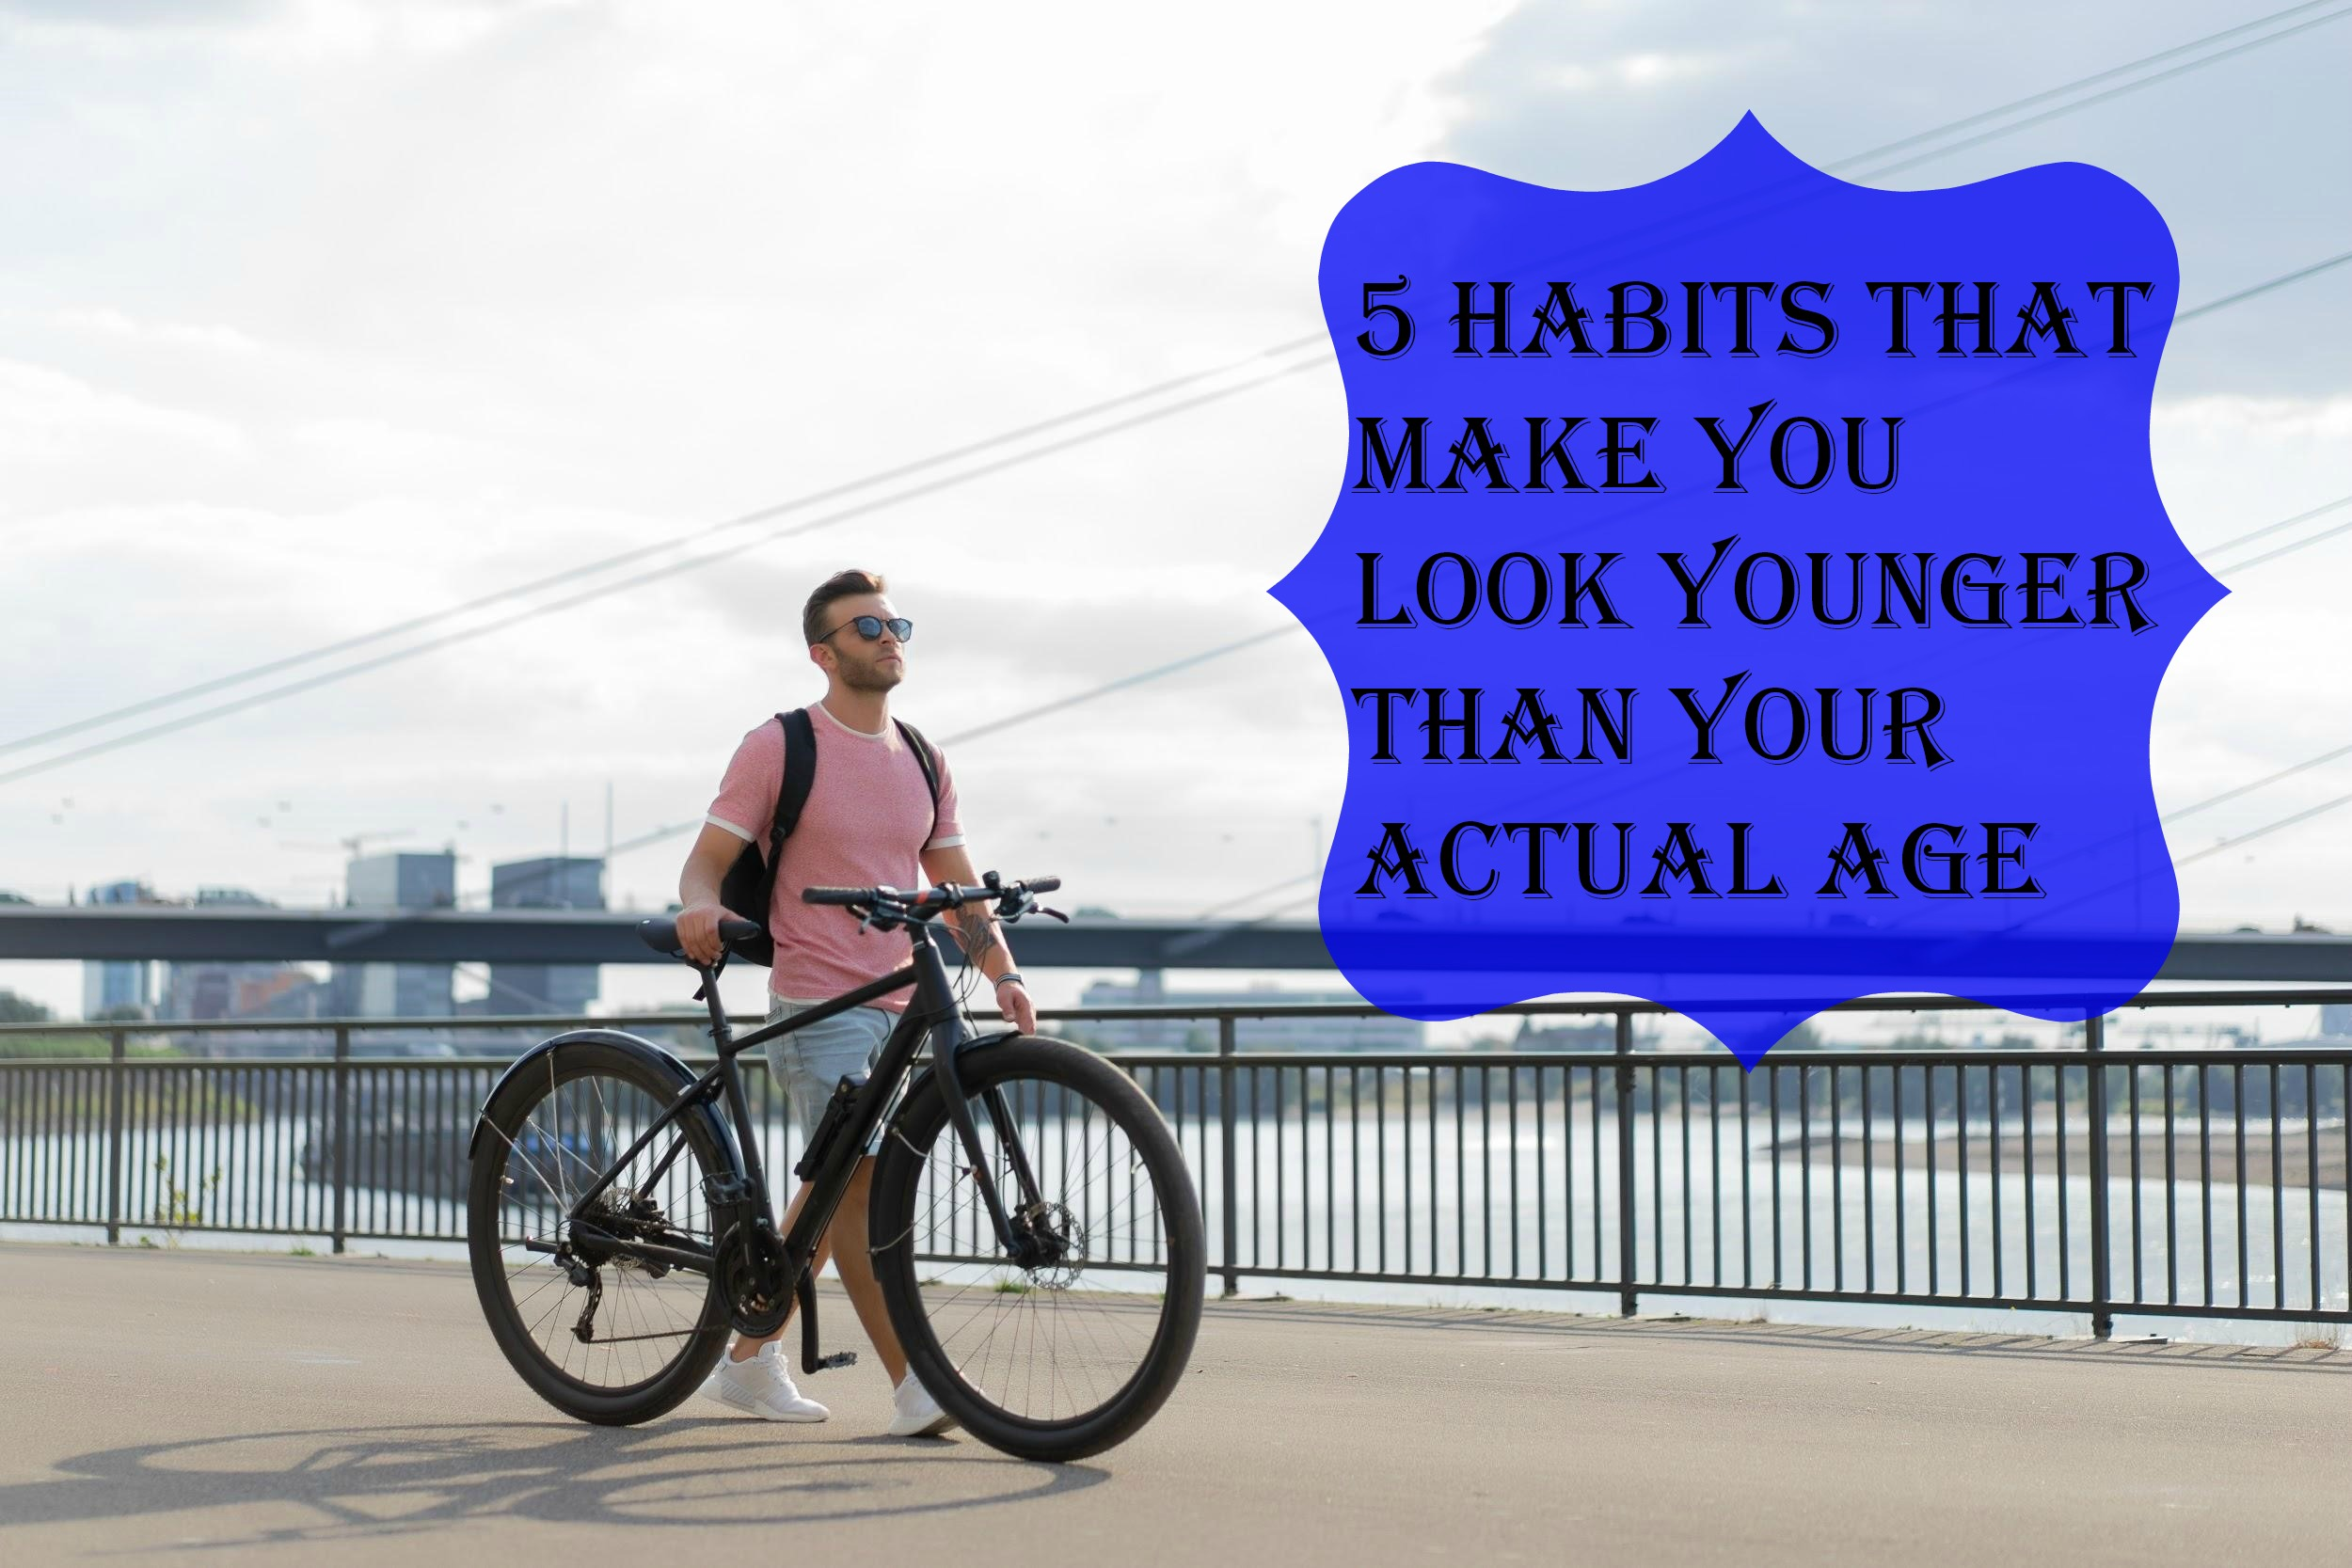 5 Habits That Make You Look Younger Than Your Actual Age